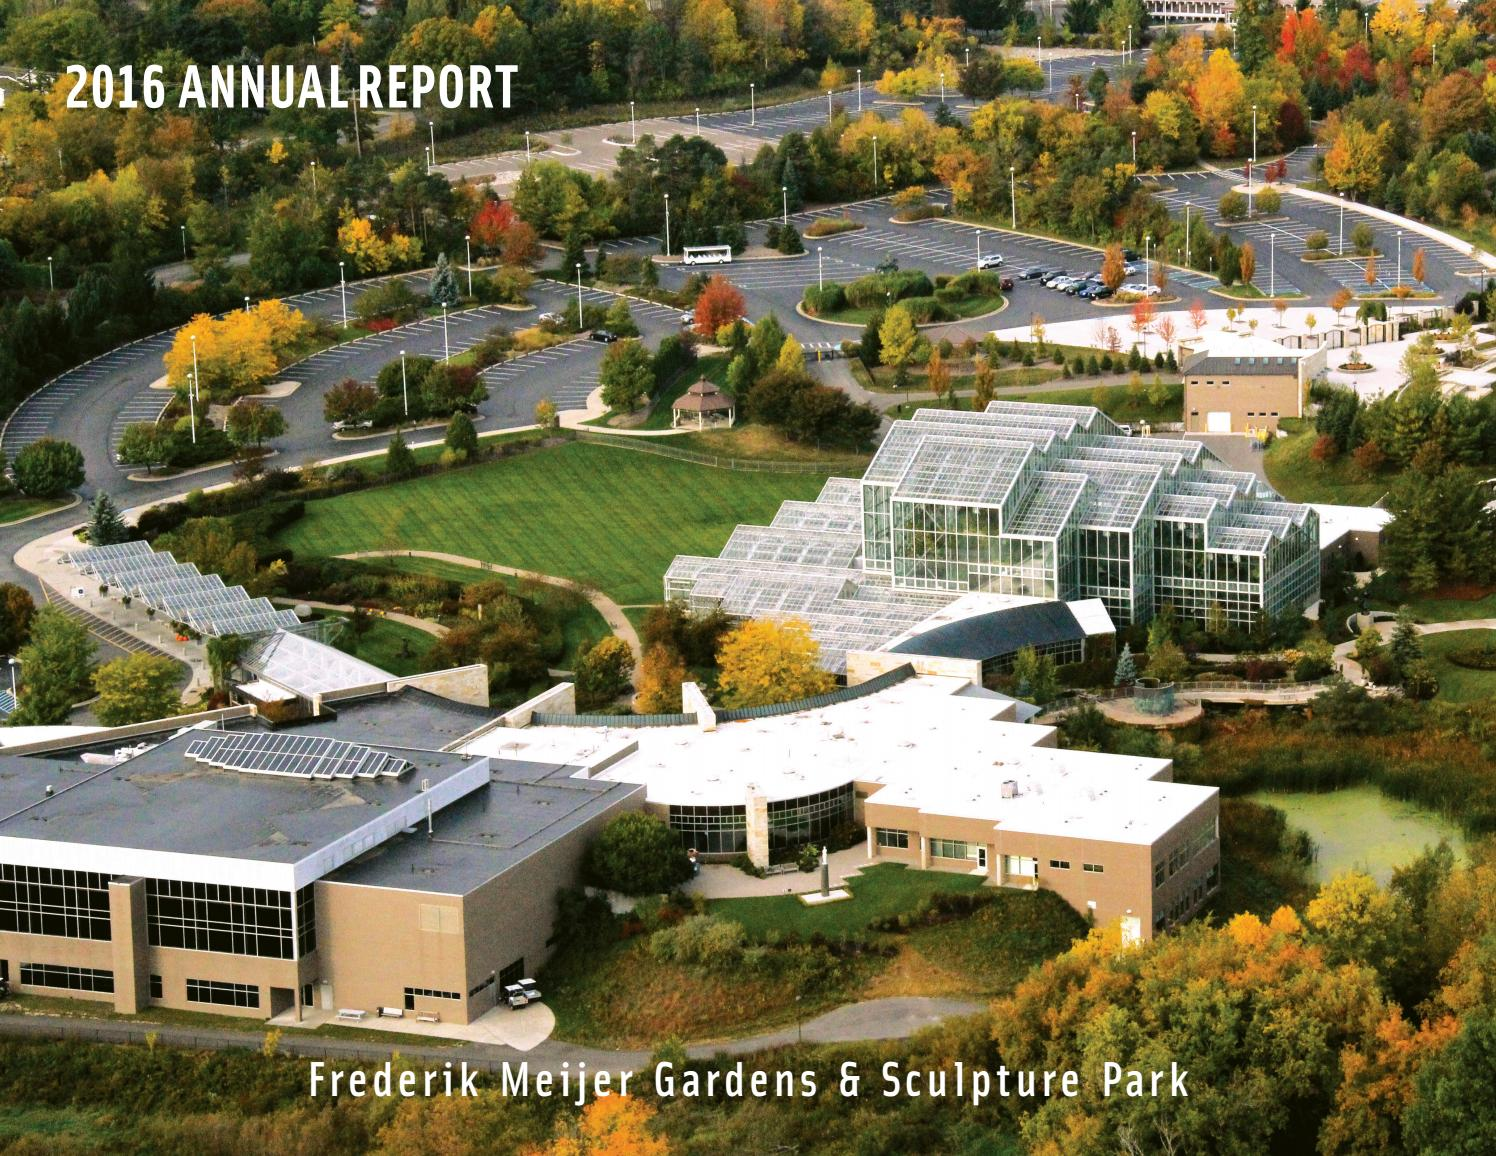 2016 annual report frederik meijer gardens sculpture - Frederik meijer gardens and sculpture park ...